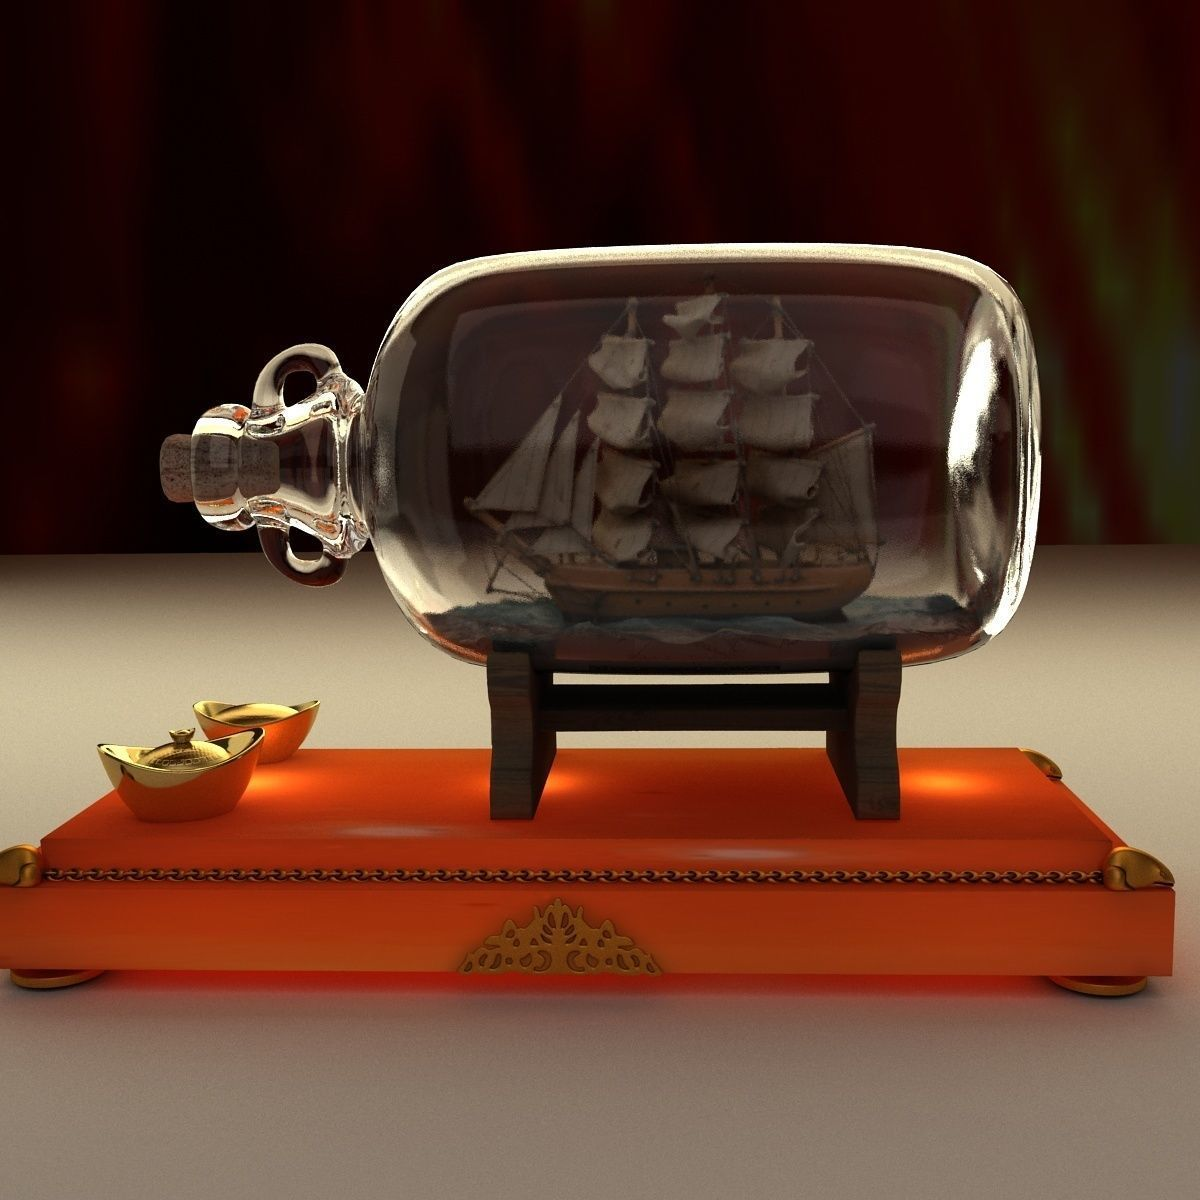 Chinese ship in the bottle